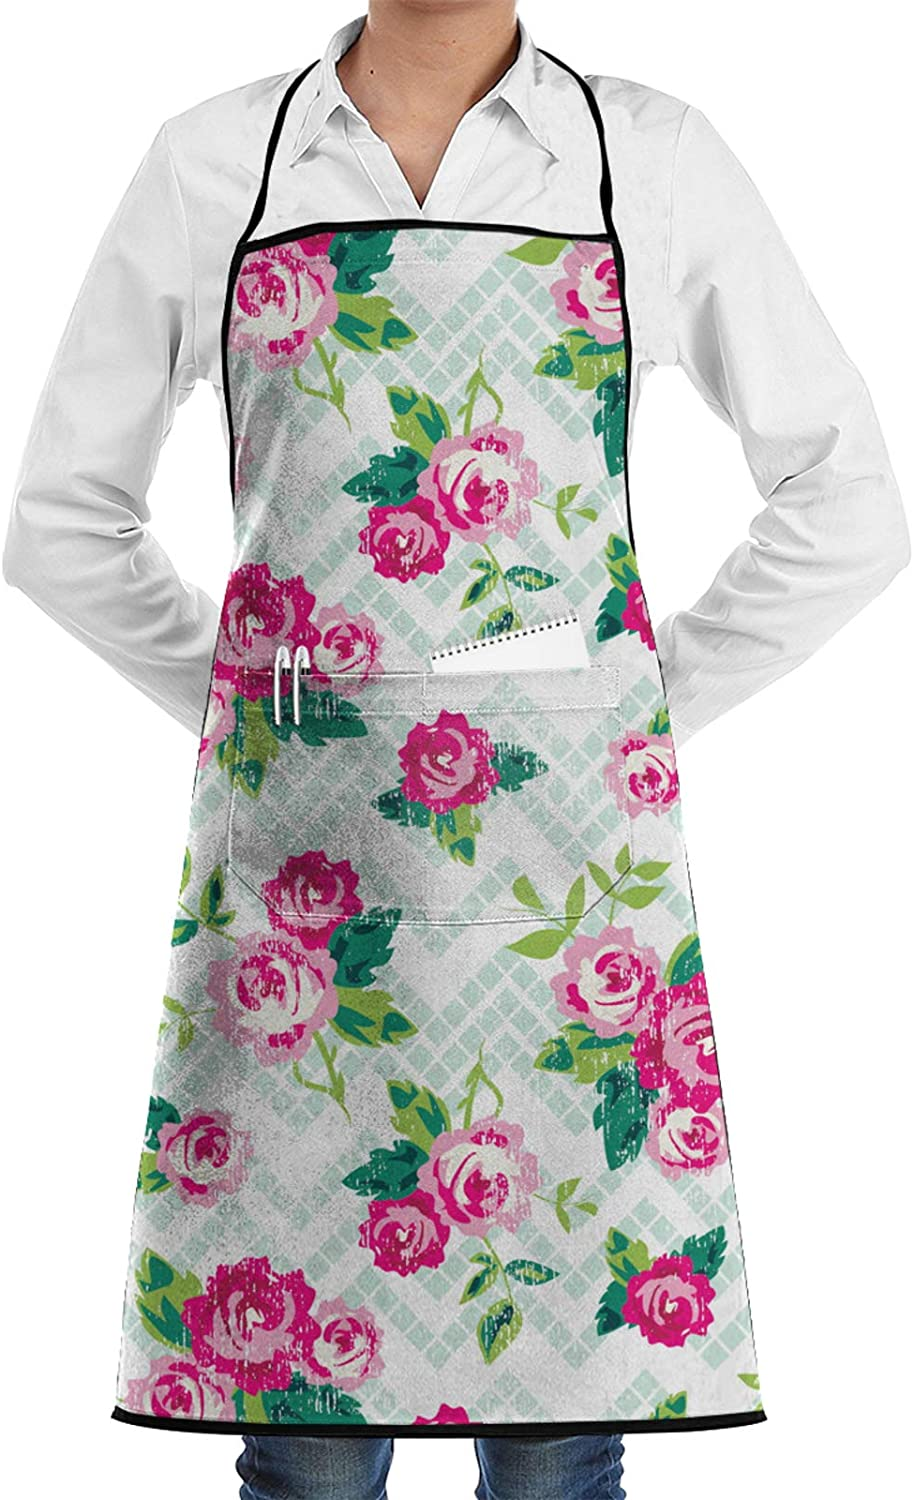 POYOMUK Unisex Adjustable Bib Apron Cooking Chef Apron - with Pockets,Waterproof, Resistant to Droplets, Durable, Machine Washable, Comfortable, Easy Care Apron